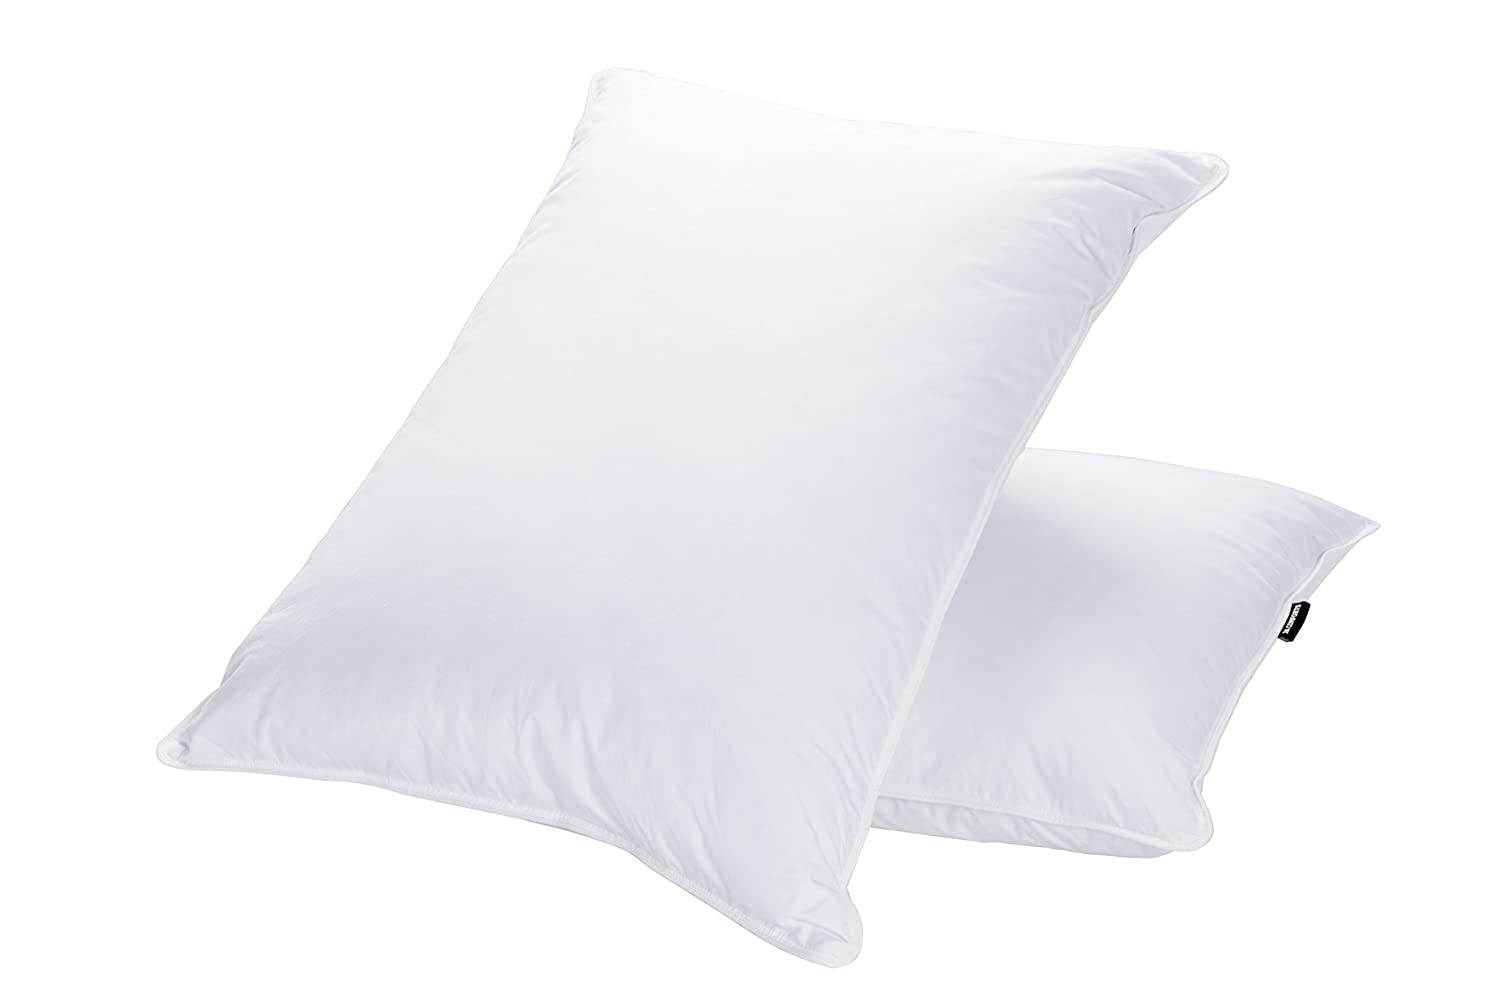 JA COMFORTS Goose Down and Feather Bed Pillows for Sleeping (2 Pack)- Standard/Queen(20IN×28IN), Hotel Collection, Natural Filling, Natural Cotton Cover, White sleep pillows Sleep pillows review – buying guide and review for sleep pillows 713hP6X5kkL